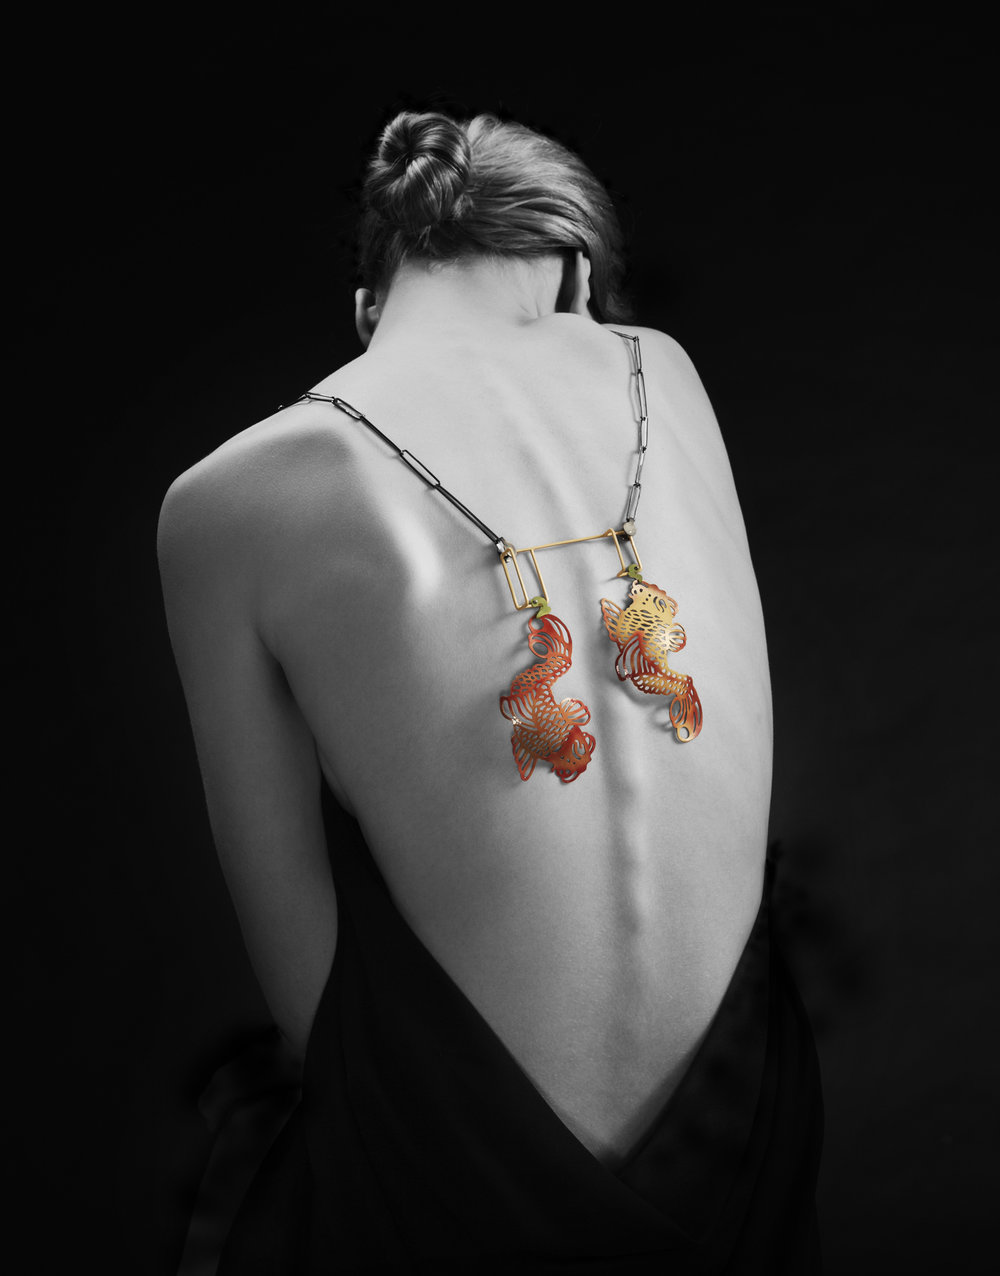 The Koi Remix. 2013  Pendant. Laquered silver, laquered copper and oxidized silver. Photo by Jan Alsaker.